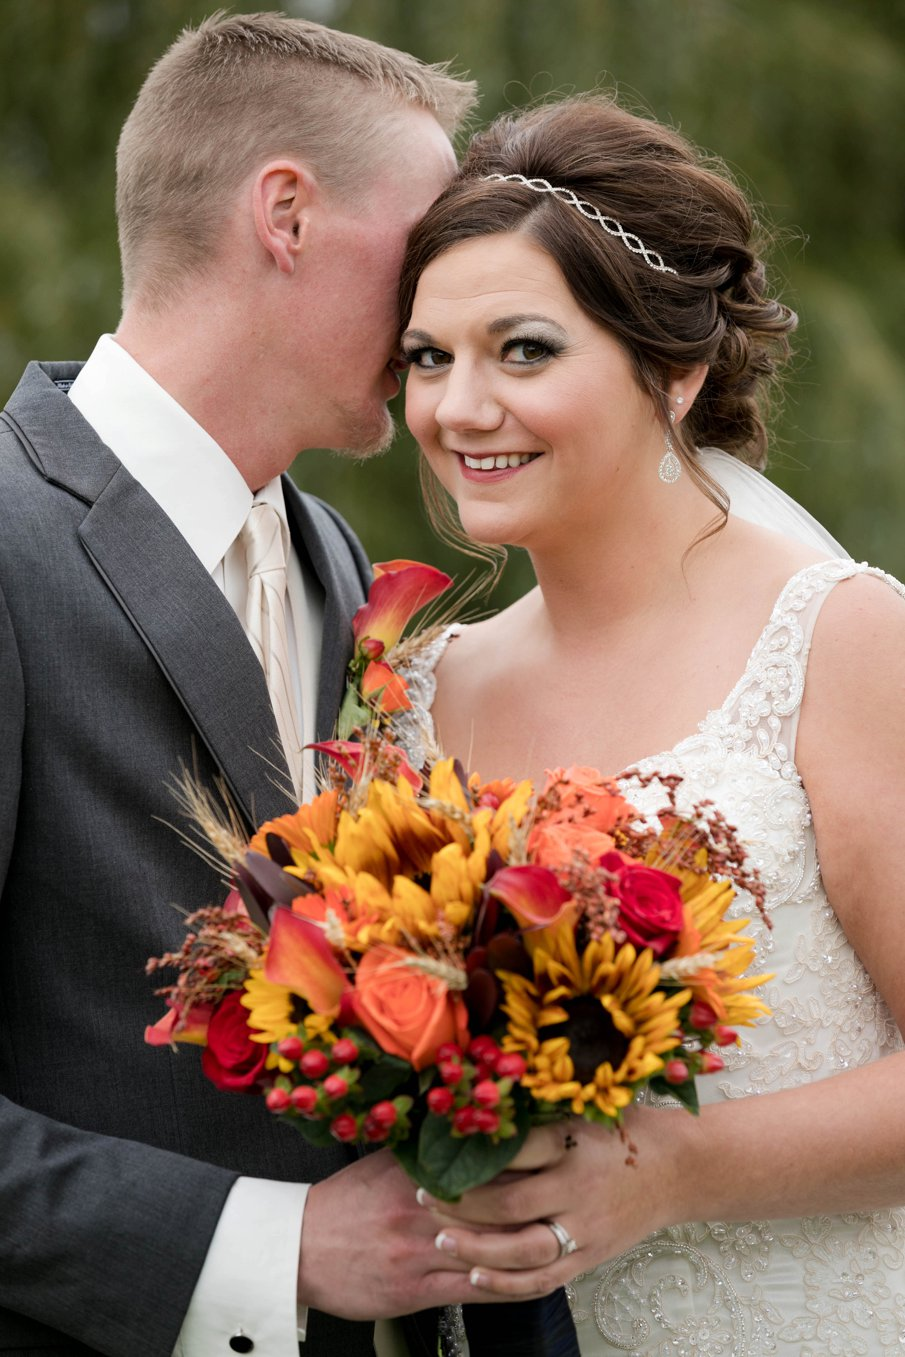 Alice Hq Photography Annie + Ben   Southern MN Weddings14.jpg